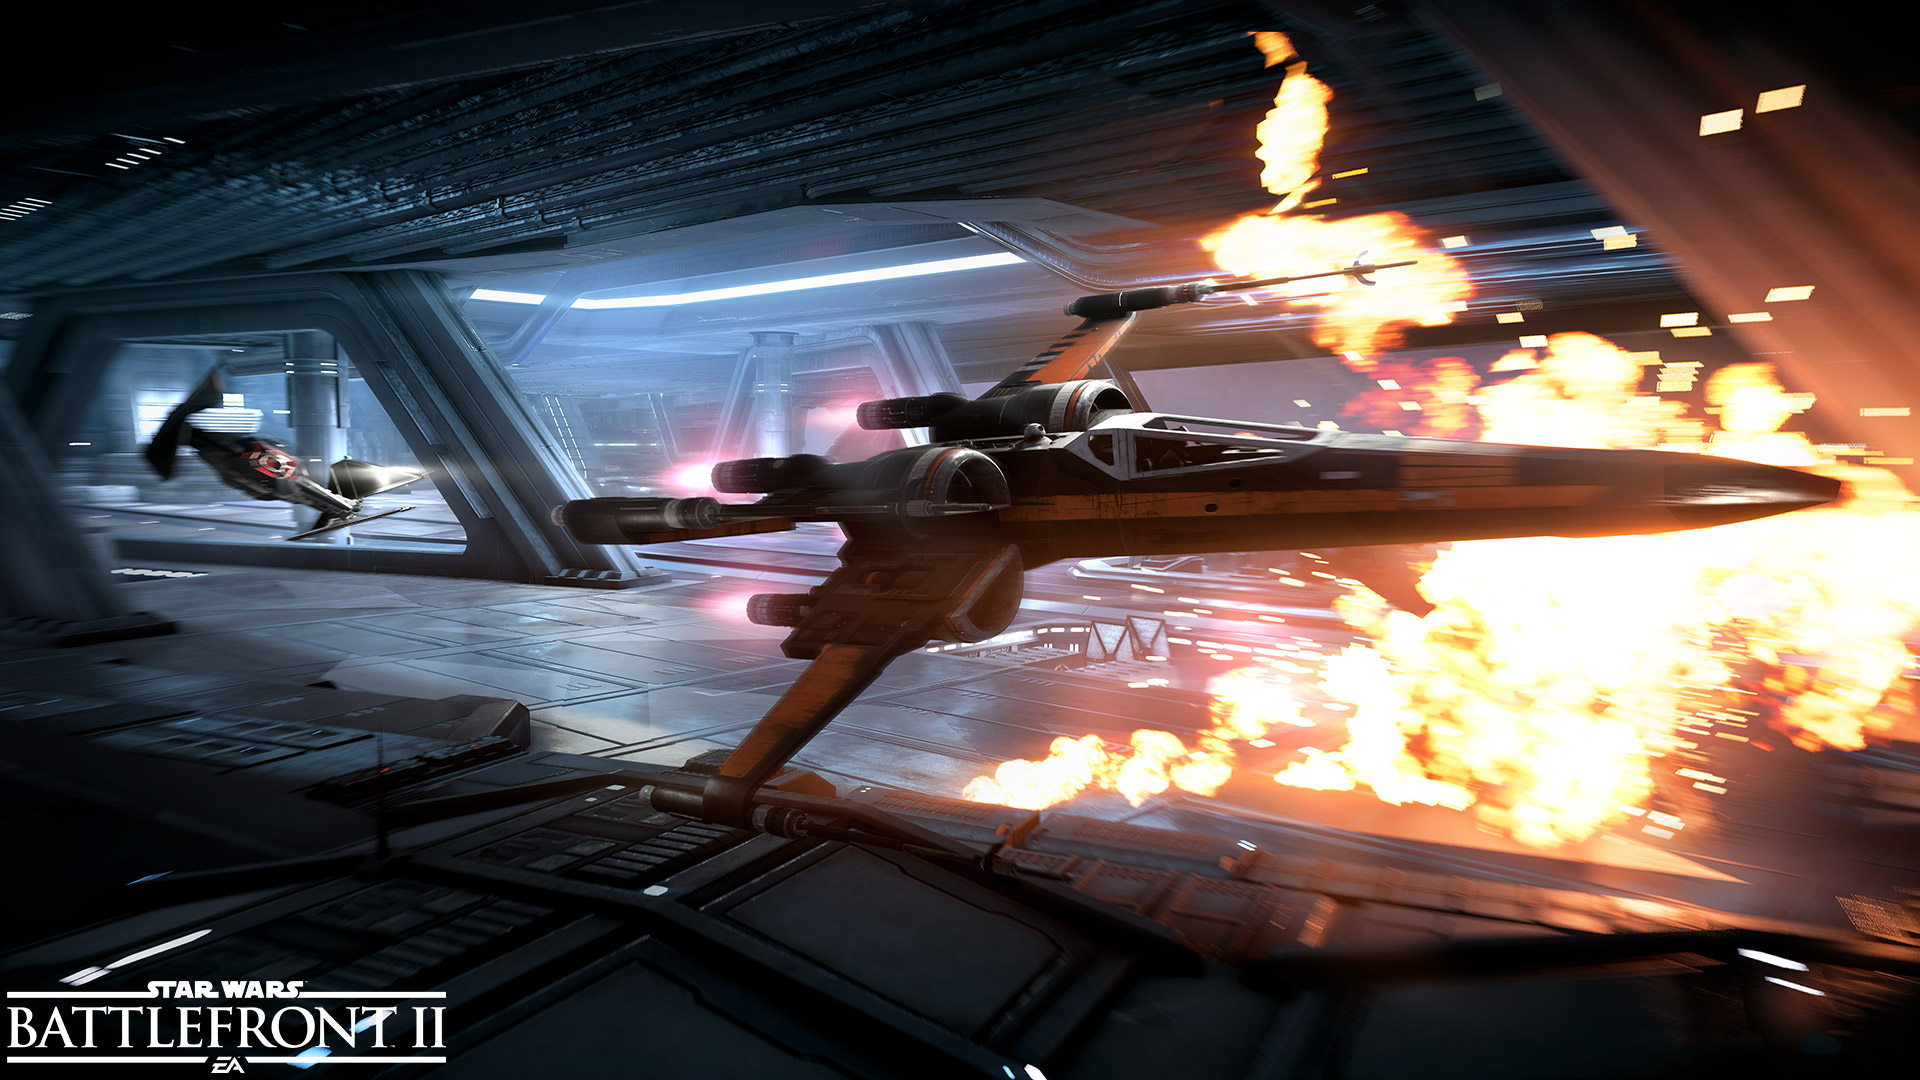 Star Wars Battlefront 2 Wallpaper 11 Wallpapersbq